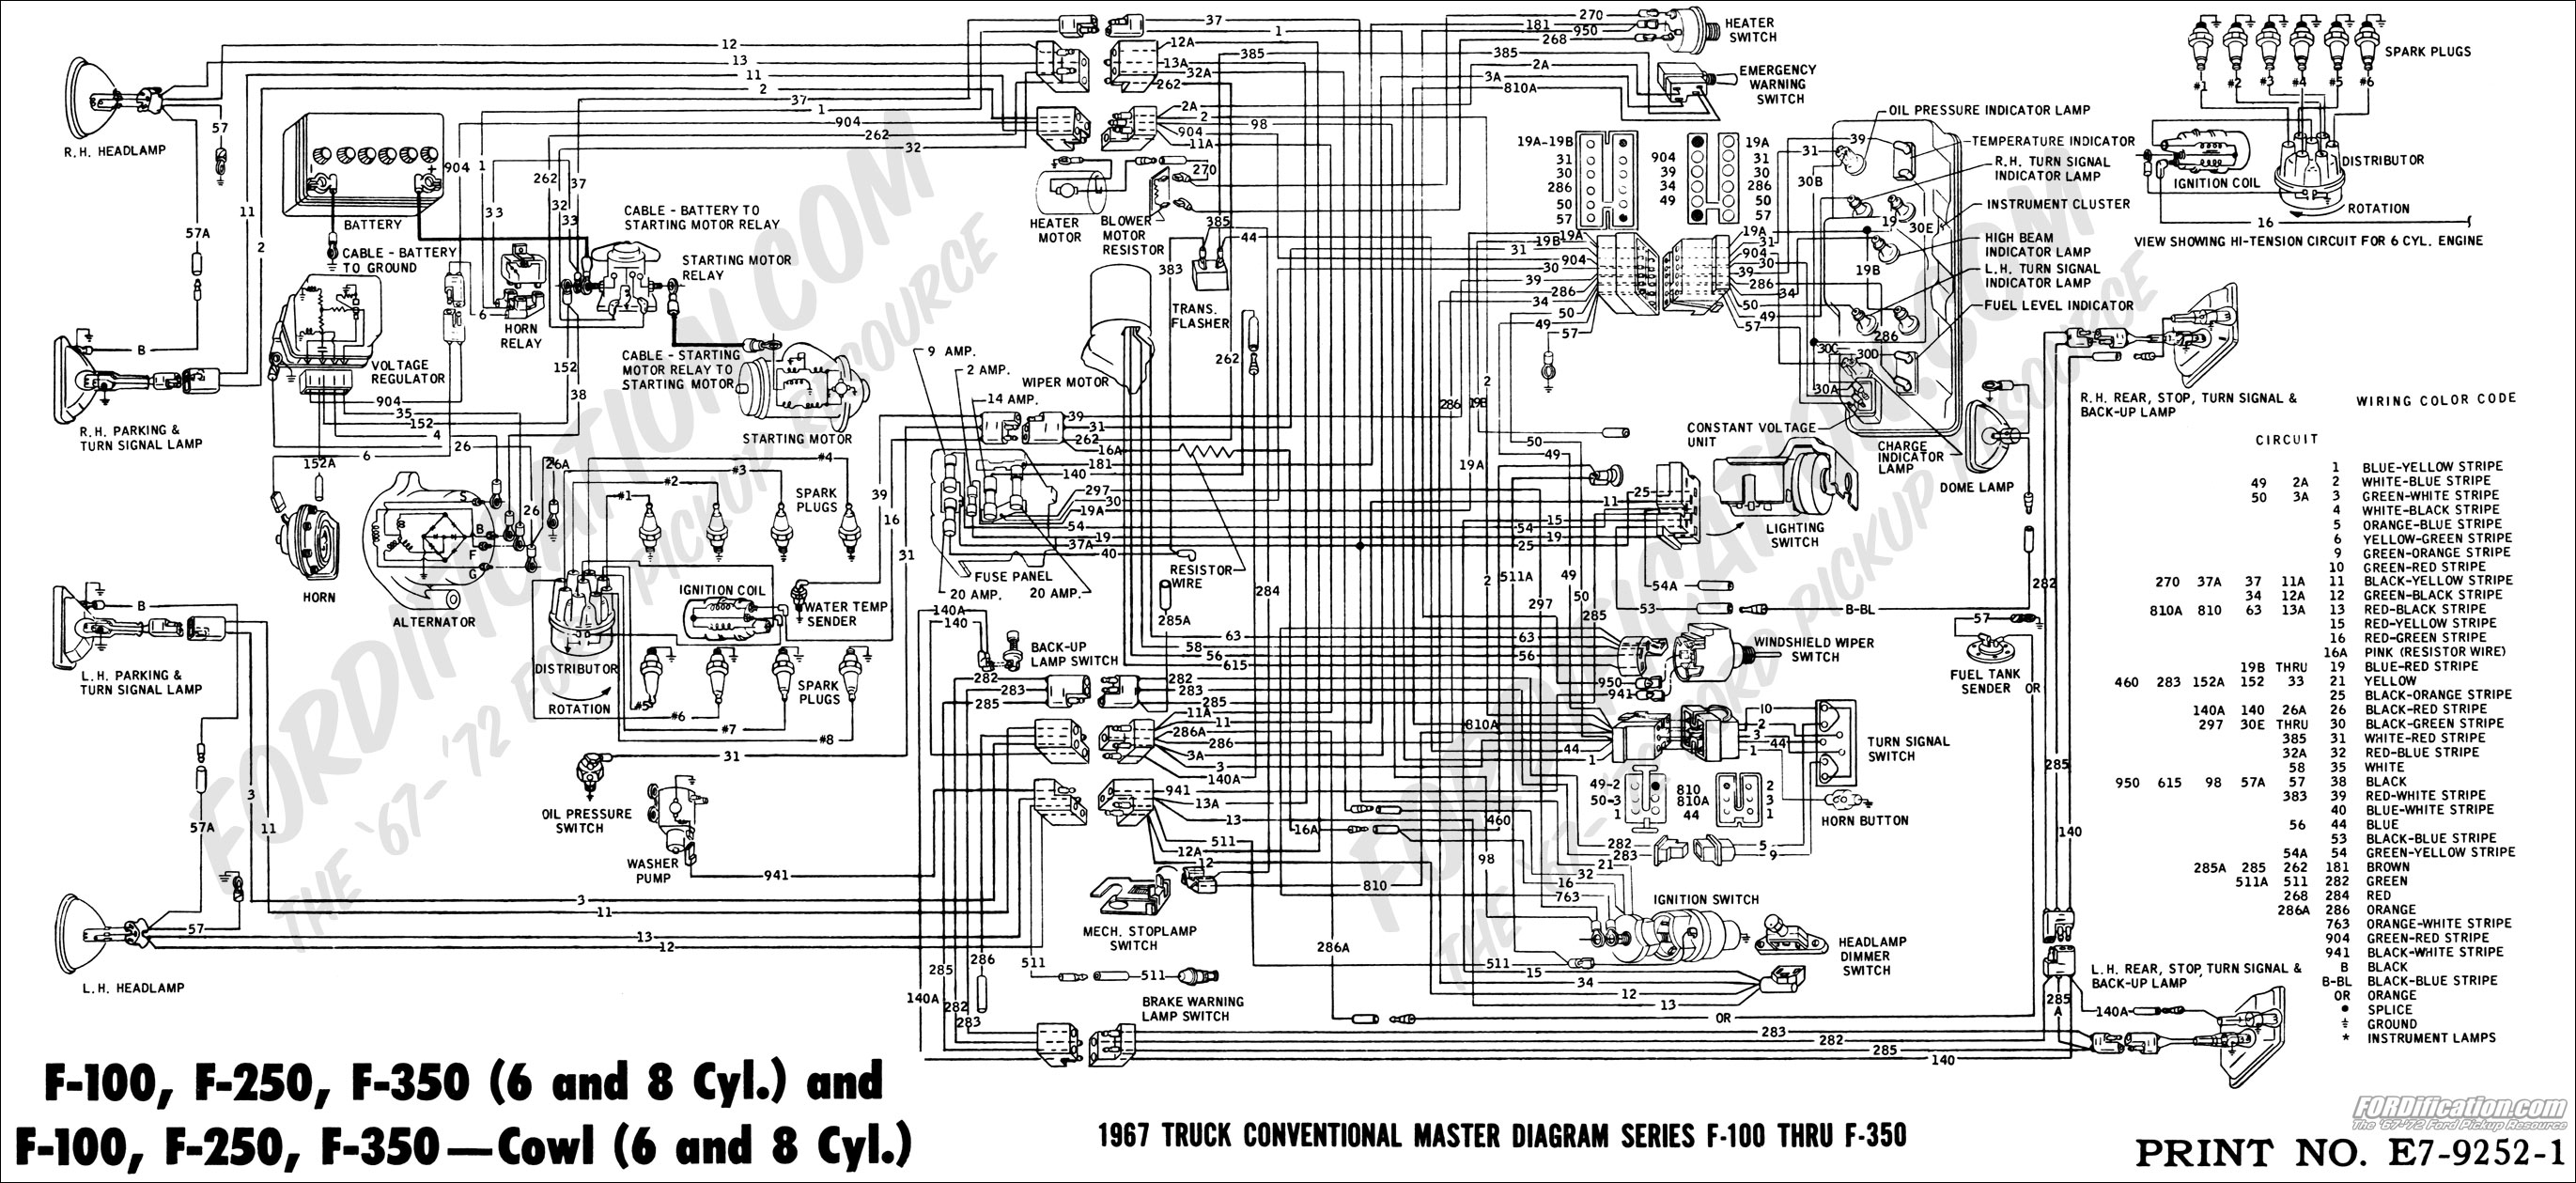 67masterdiagram ford truck technical drawings and schematics section h wiring 1961 ford truck wiring diagram at gsmportal.co